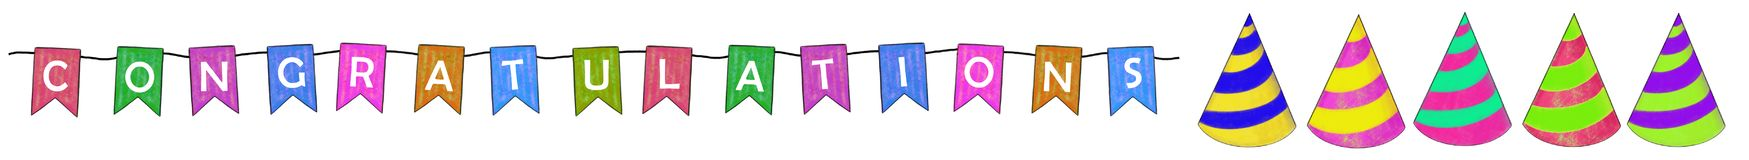 Congratulations. Text colored banner with party hats royalty free illustration